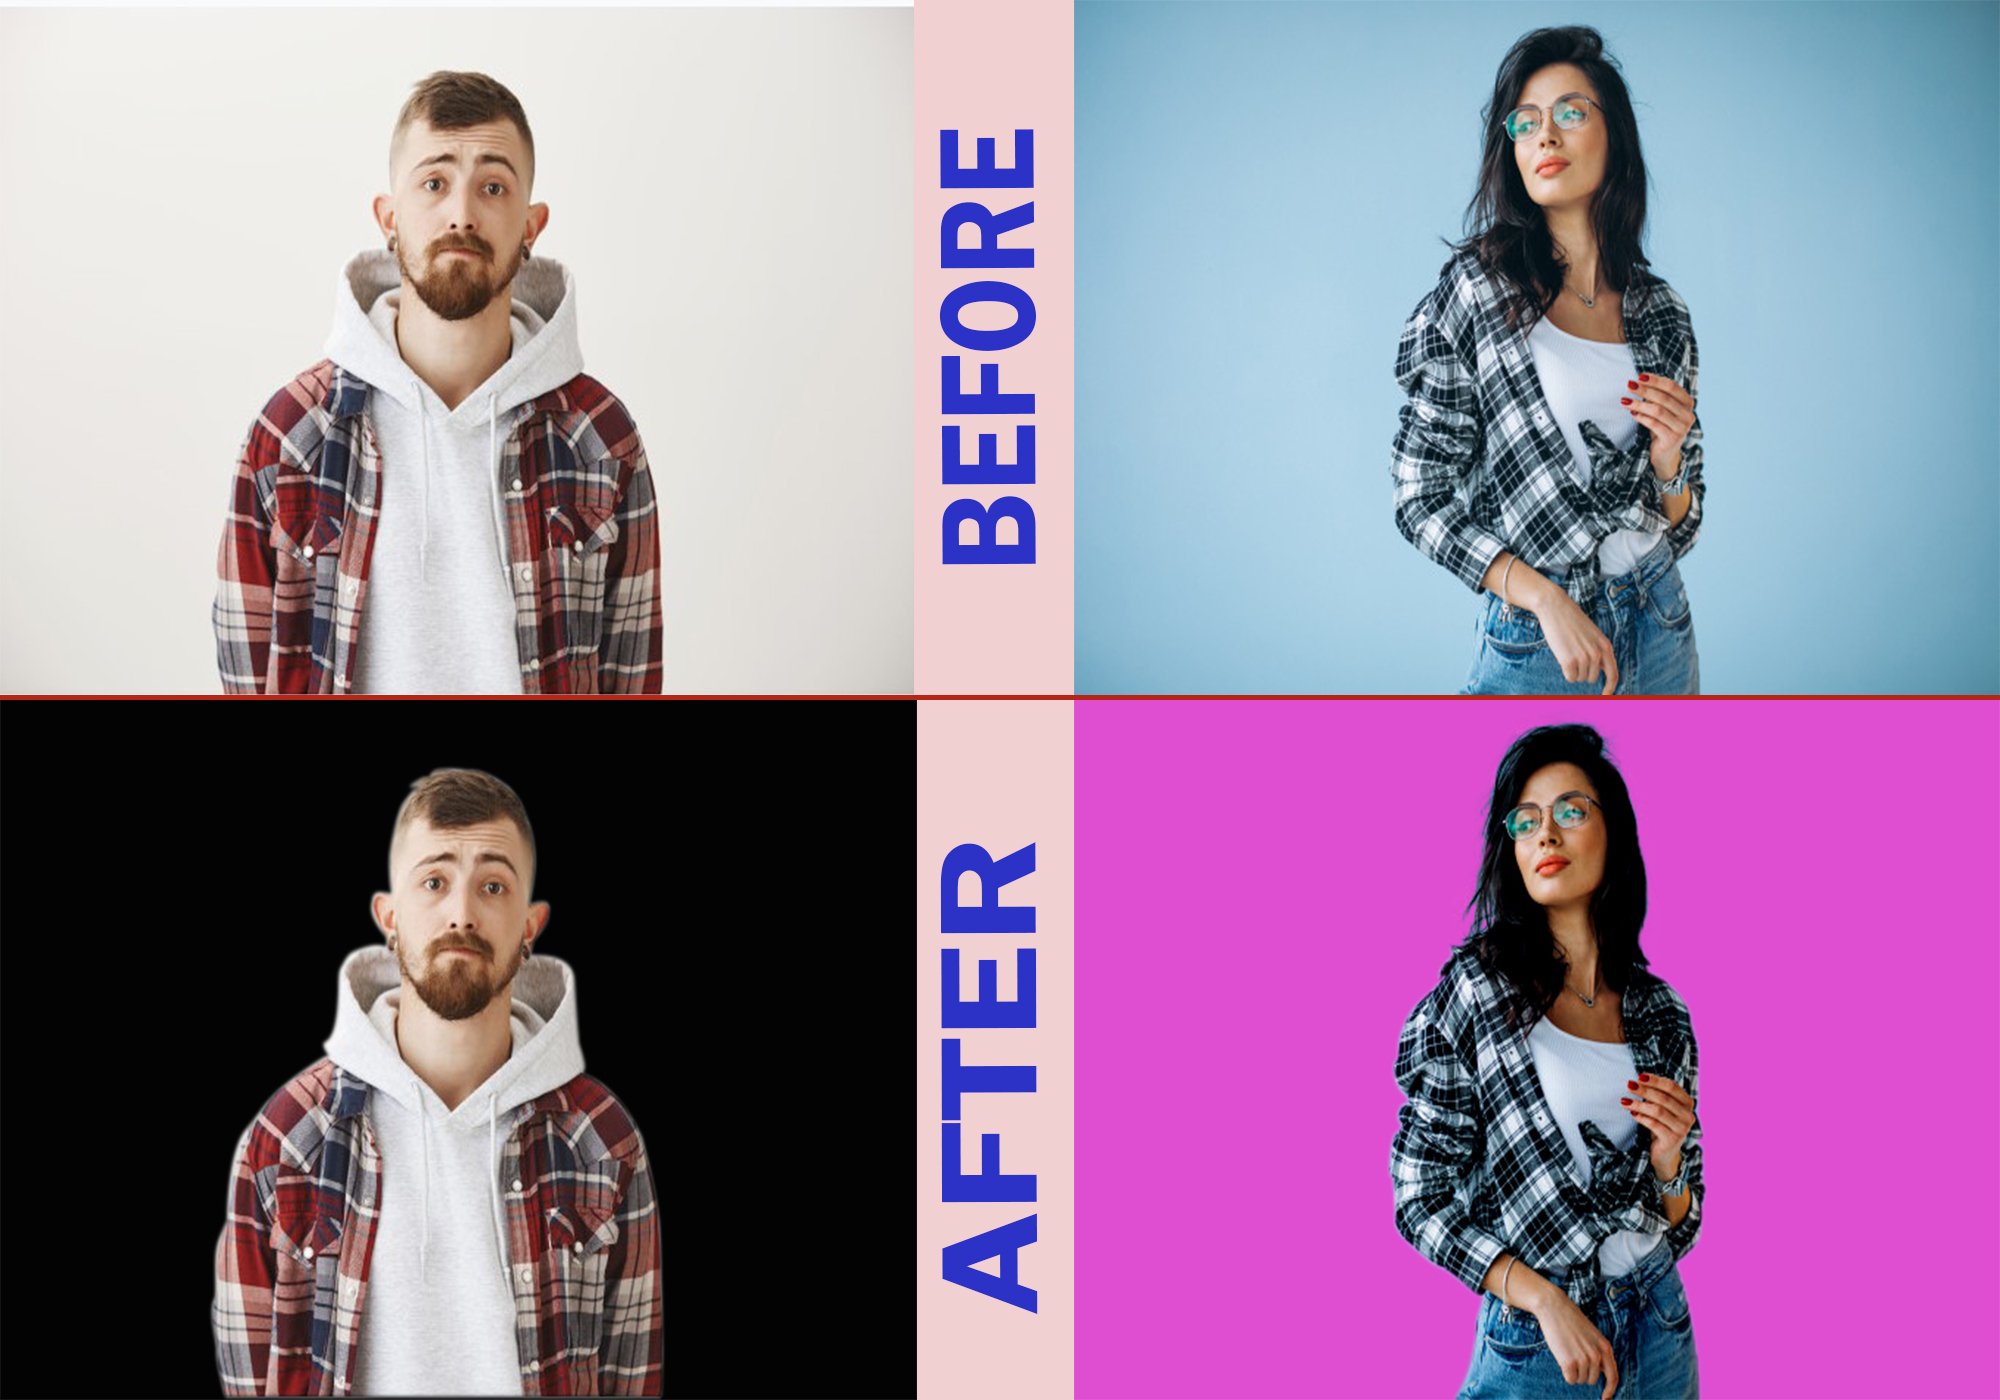 10 photo professional clipping path and background remove just in 2 hour